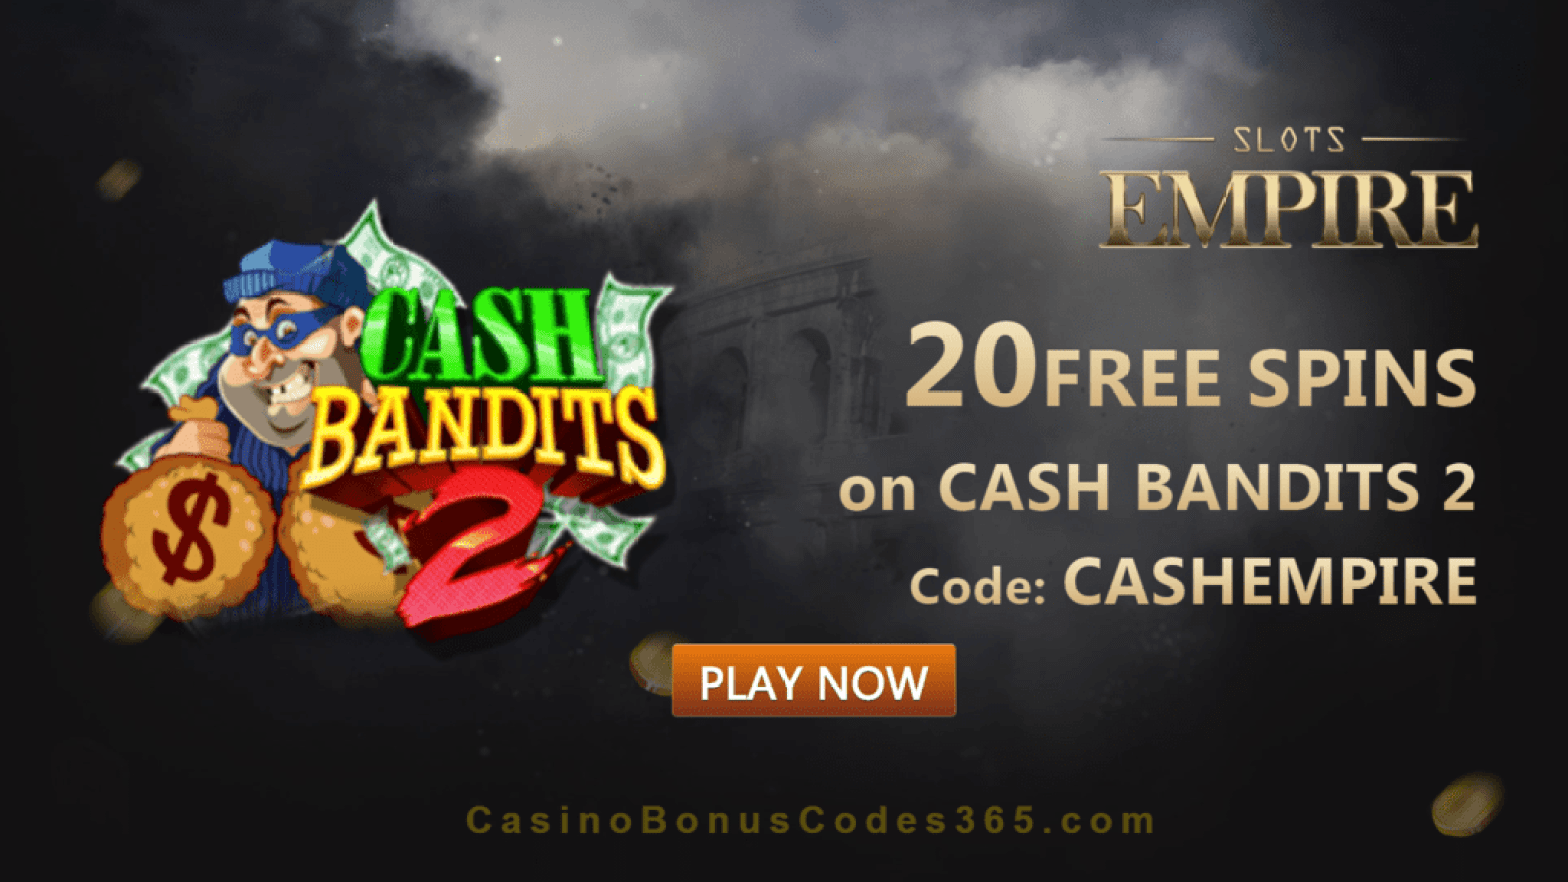 Slots Empire 20 FREE Spins on RTG Cash Bandits 2 Exclusive Offer